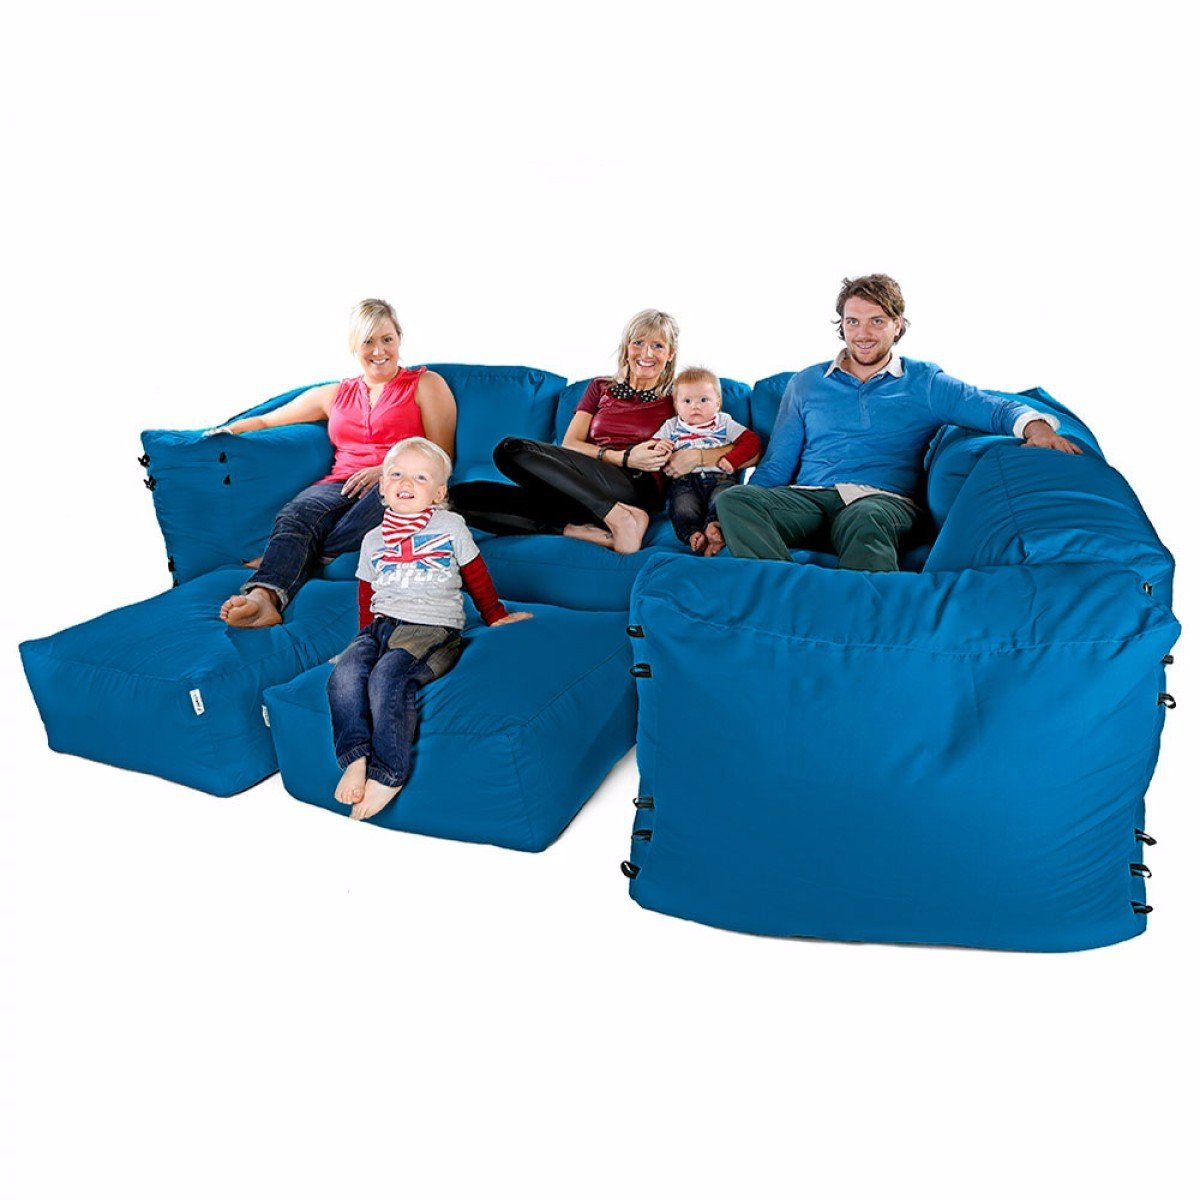 Modulare Ecksofa Bean Bags - 9Pc Luxusset -Teal